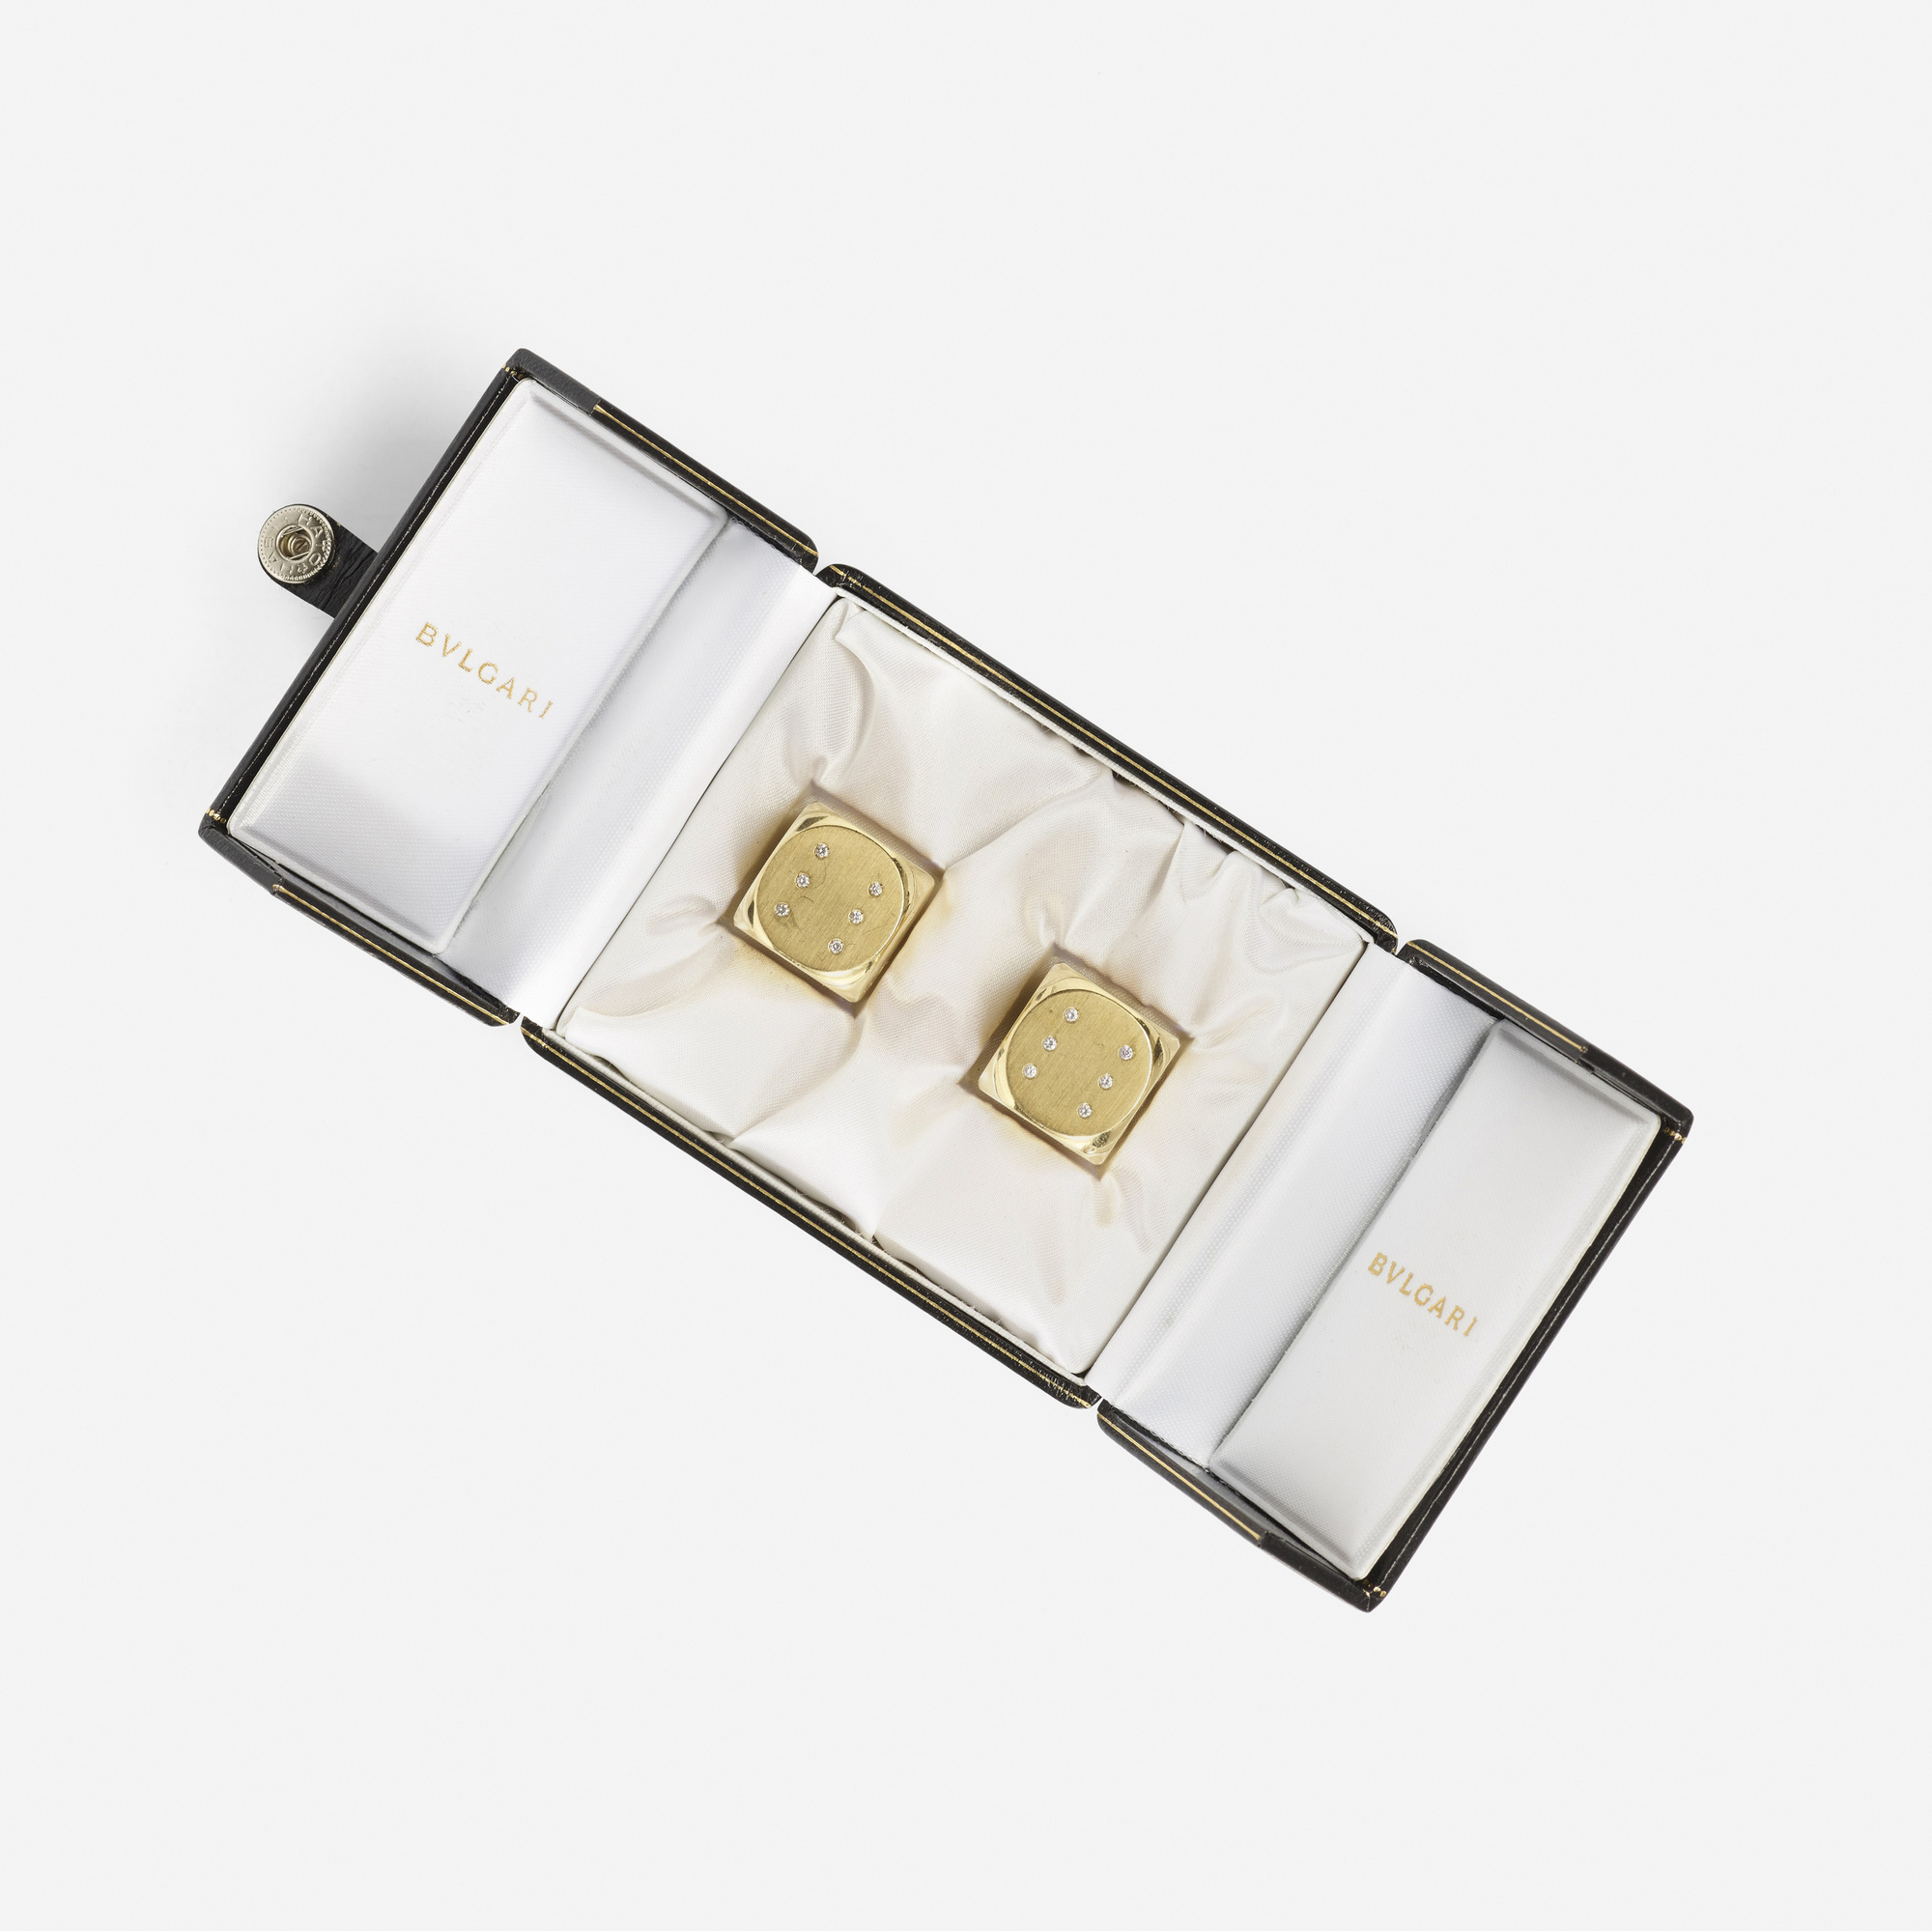 210: Bulgari / A pair of gold and diamond dice (3 of 3)